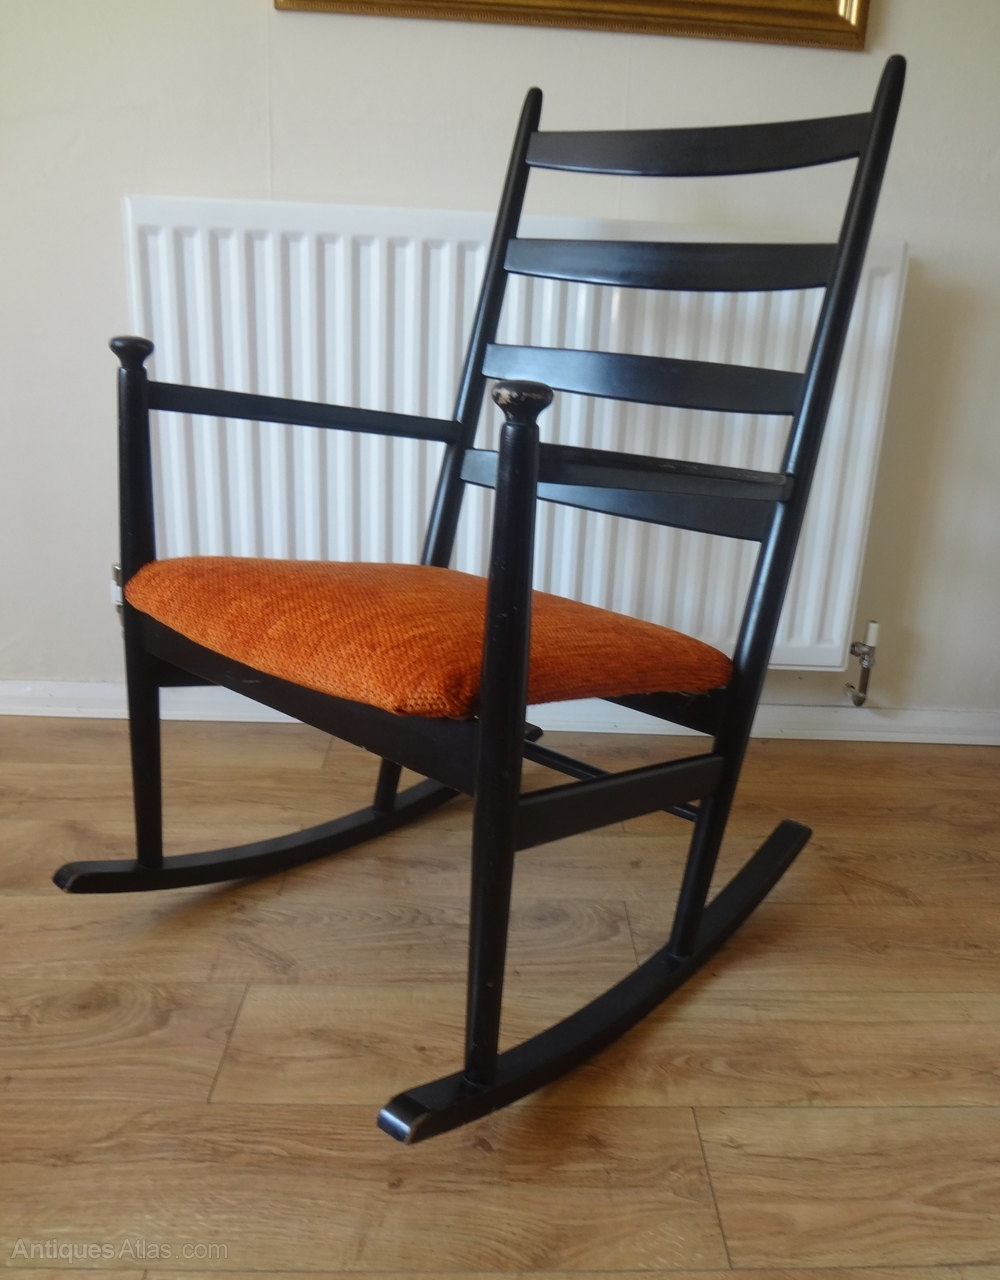 Antiques Atlas – Retro Danish Rocking Chair Pertaining To Retro Rocking Chairs (View 15 of 15)